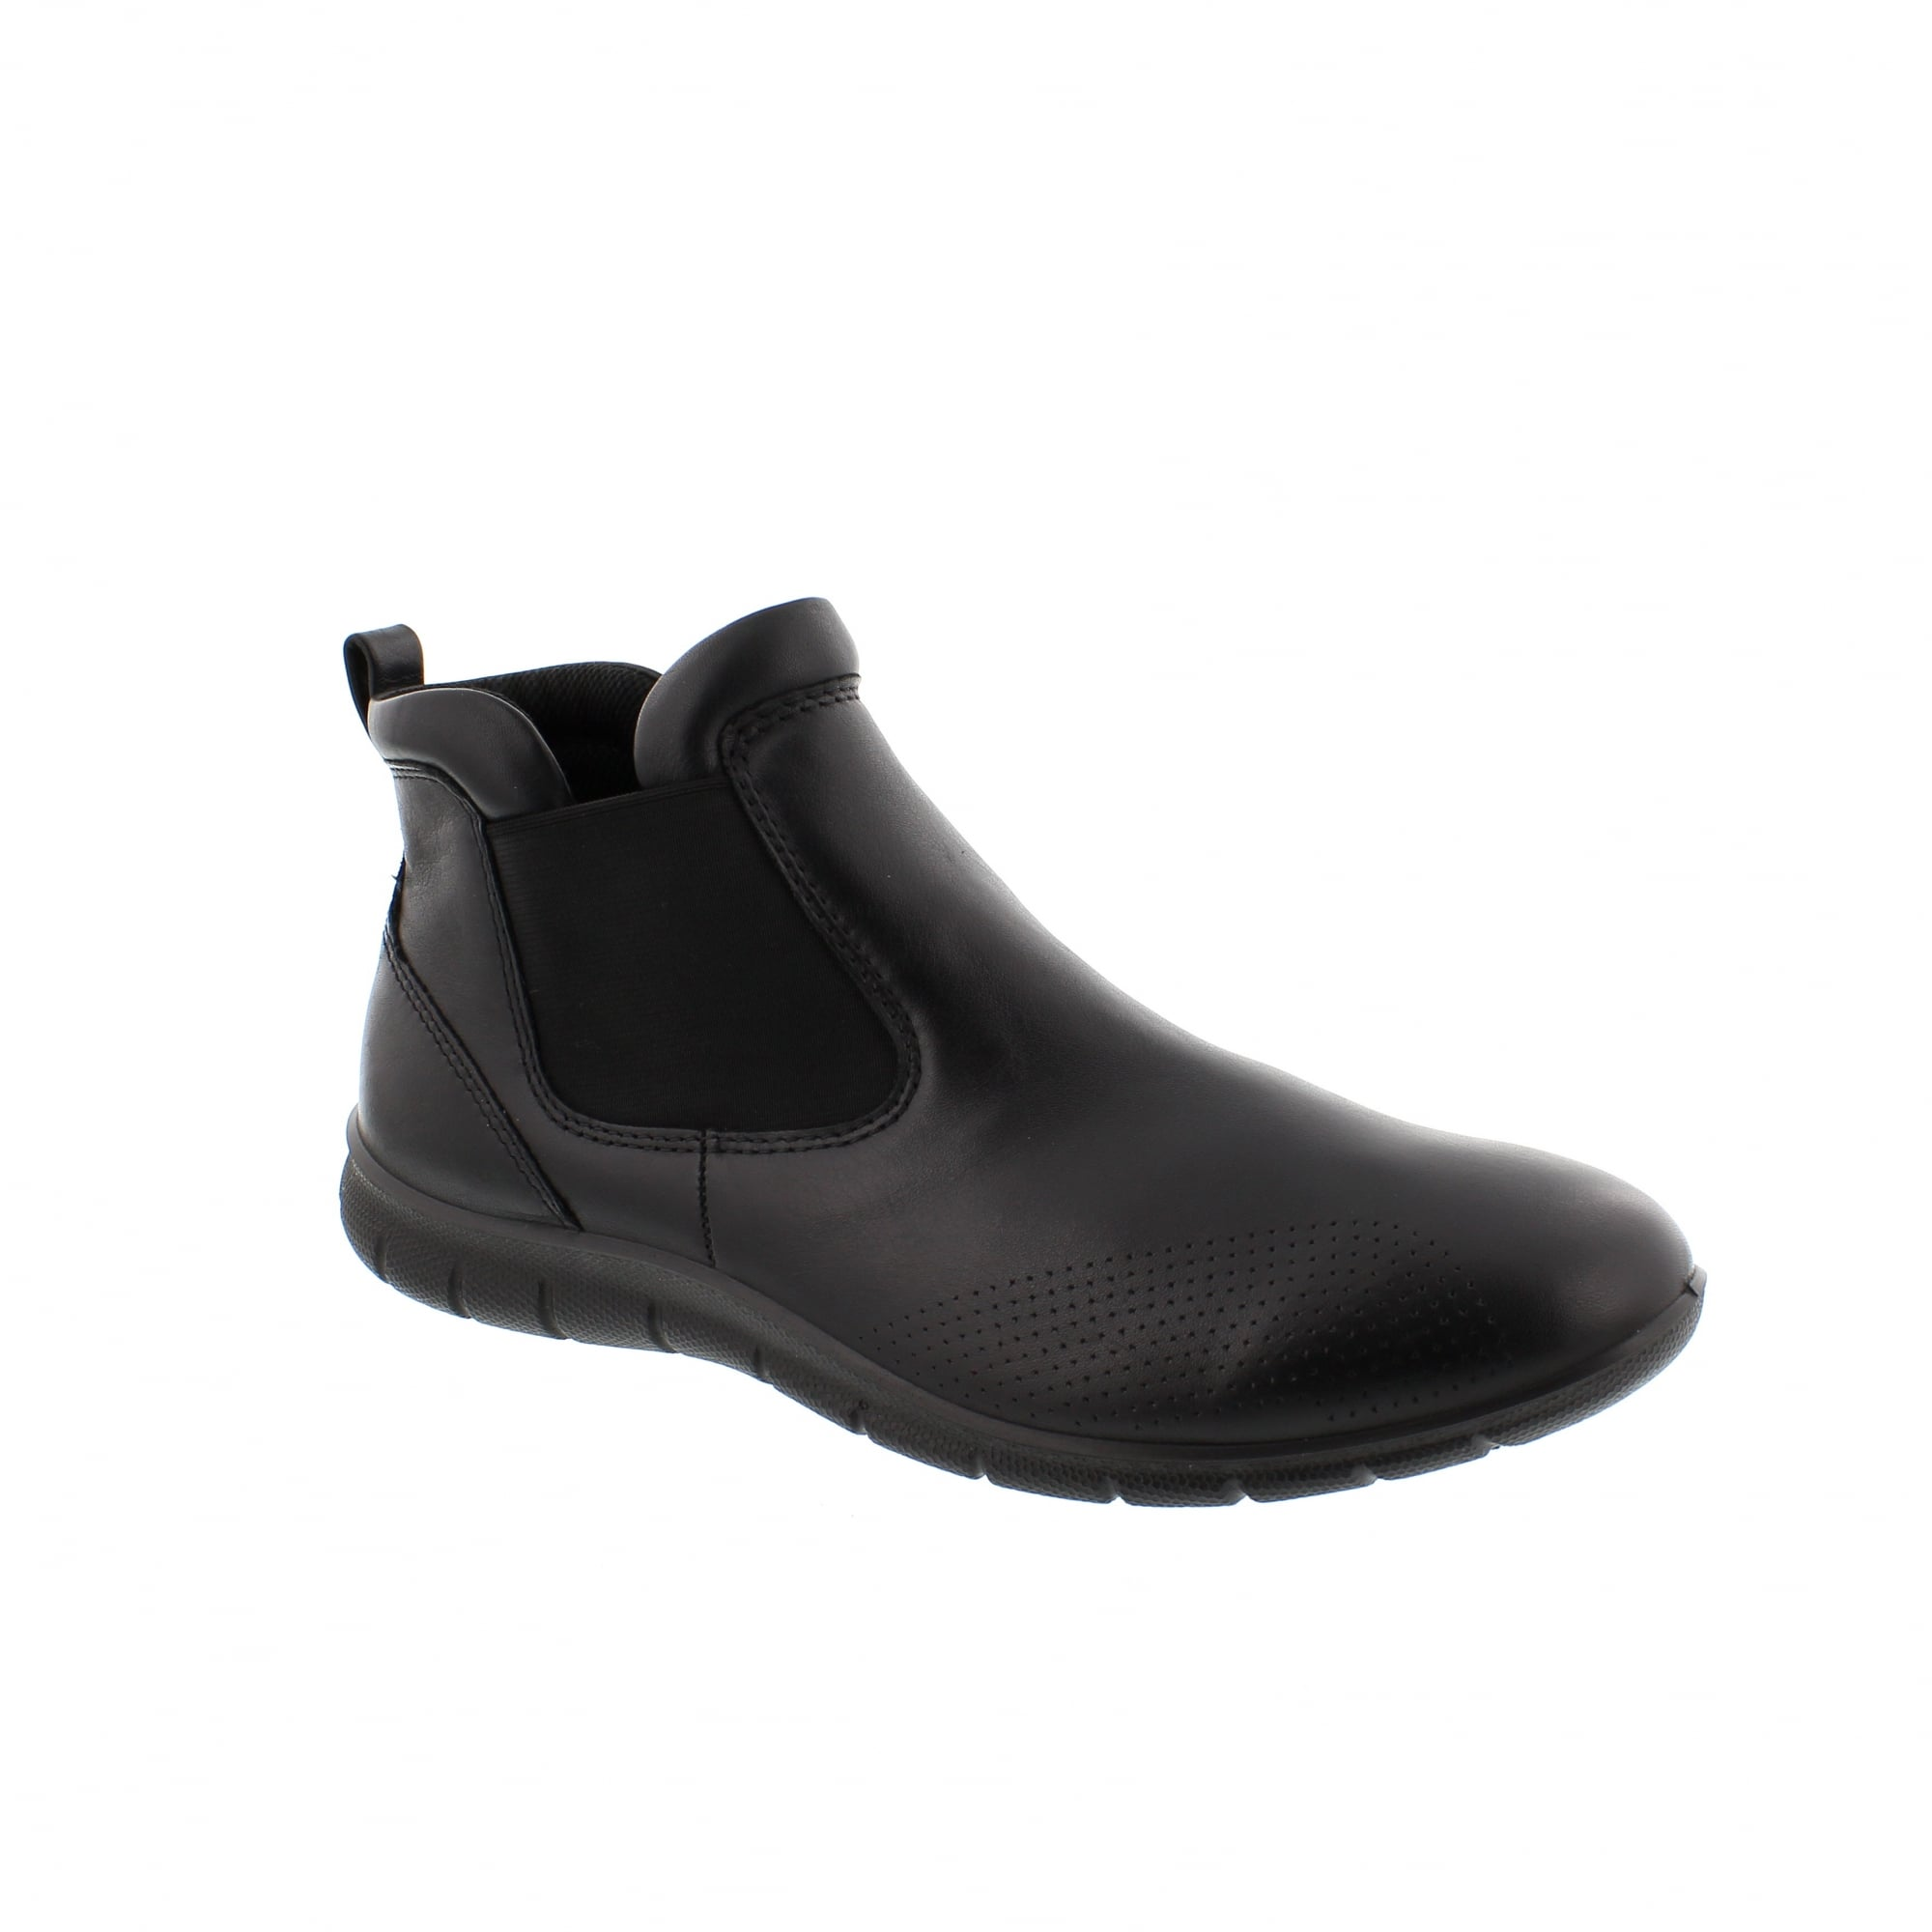 66300bed Ecco Babett | 210283-01001 - Womens from Rogerson Shoes UK